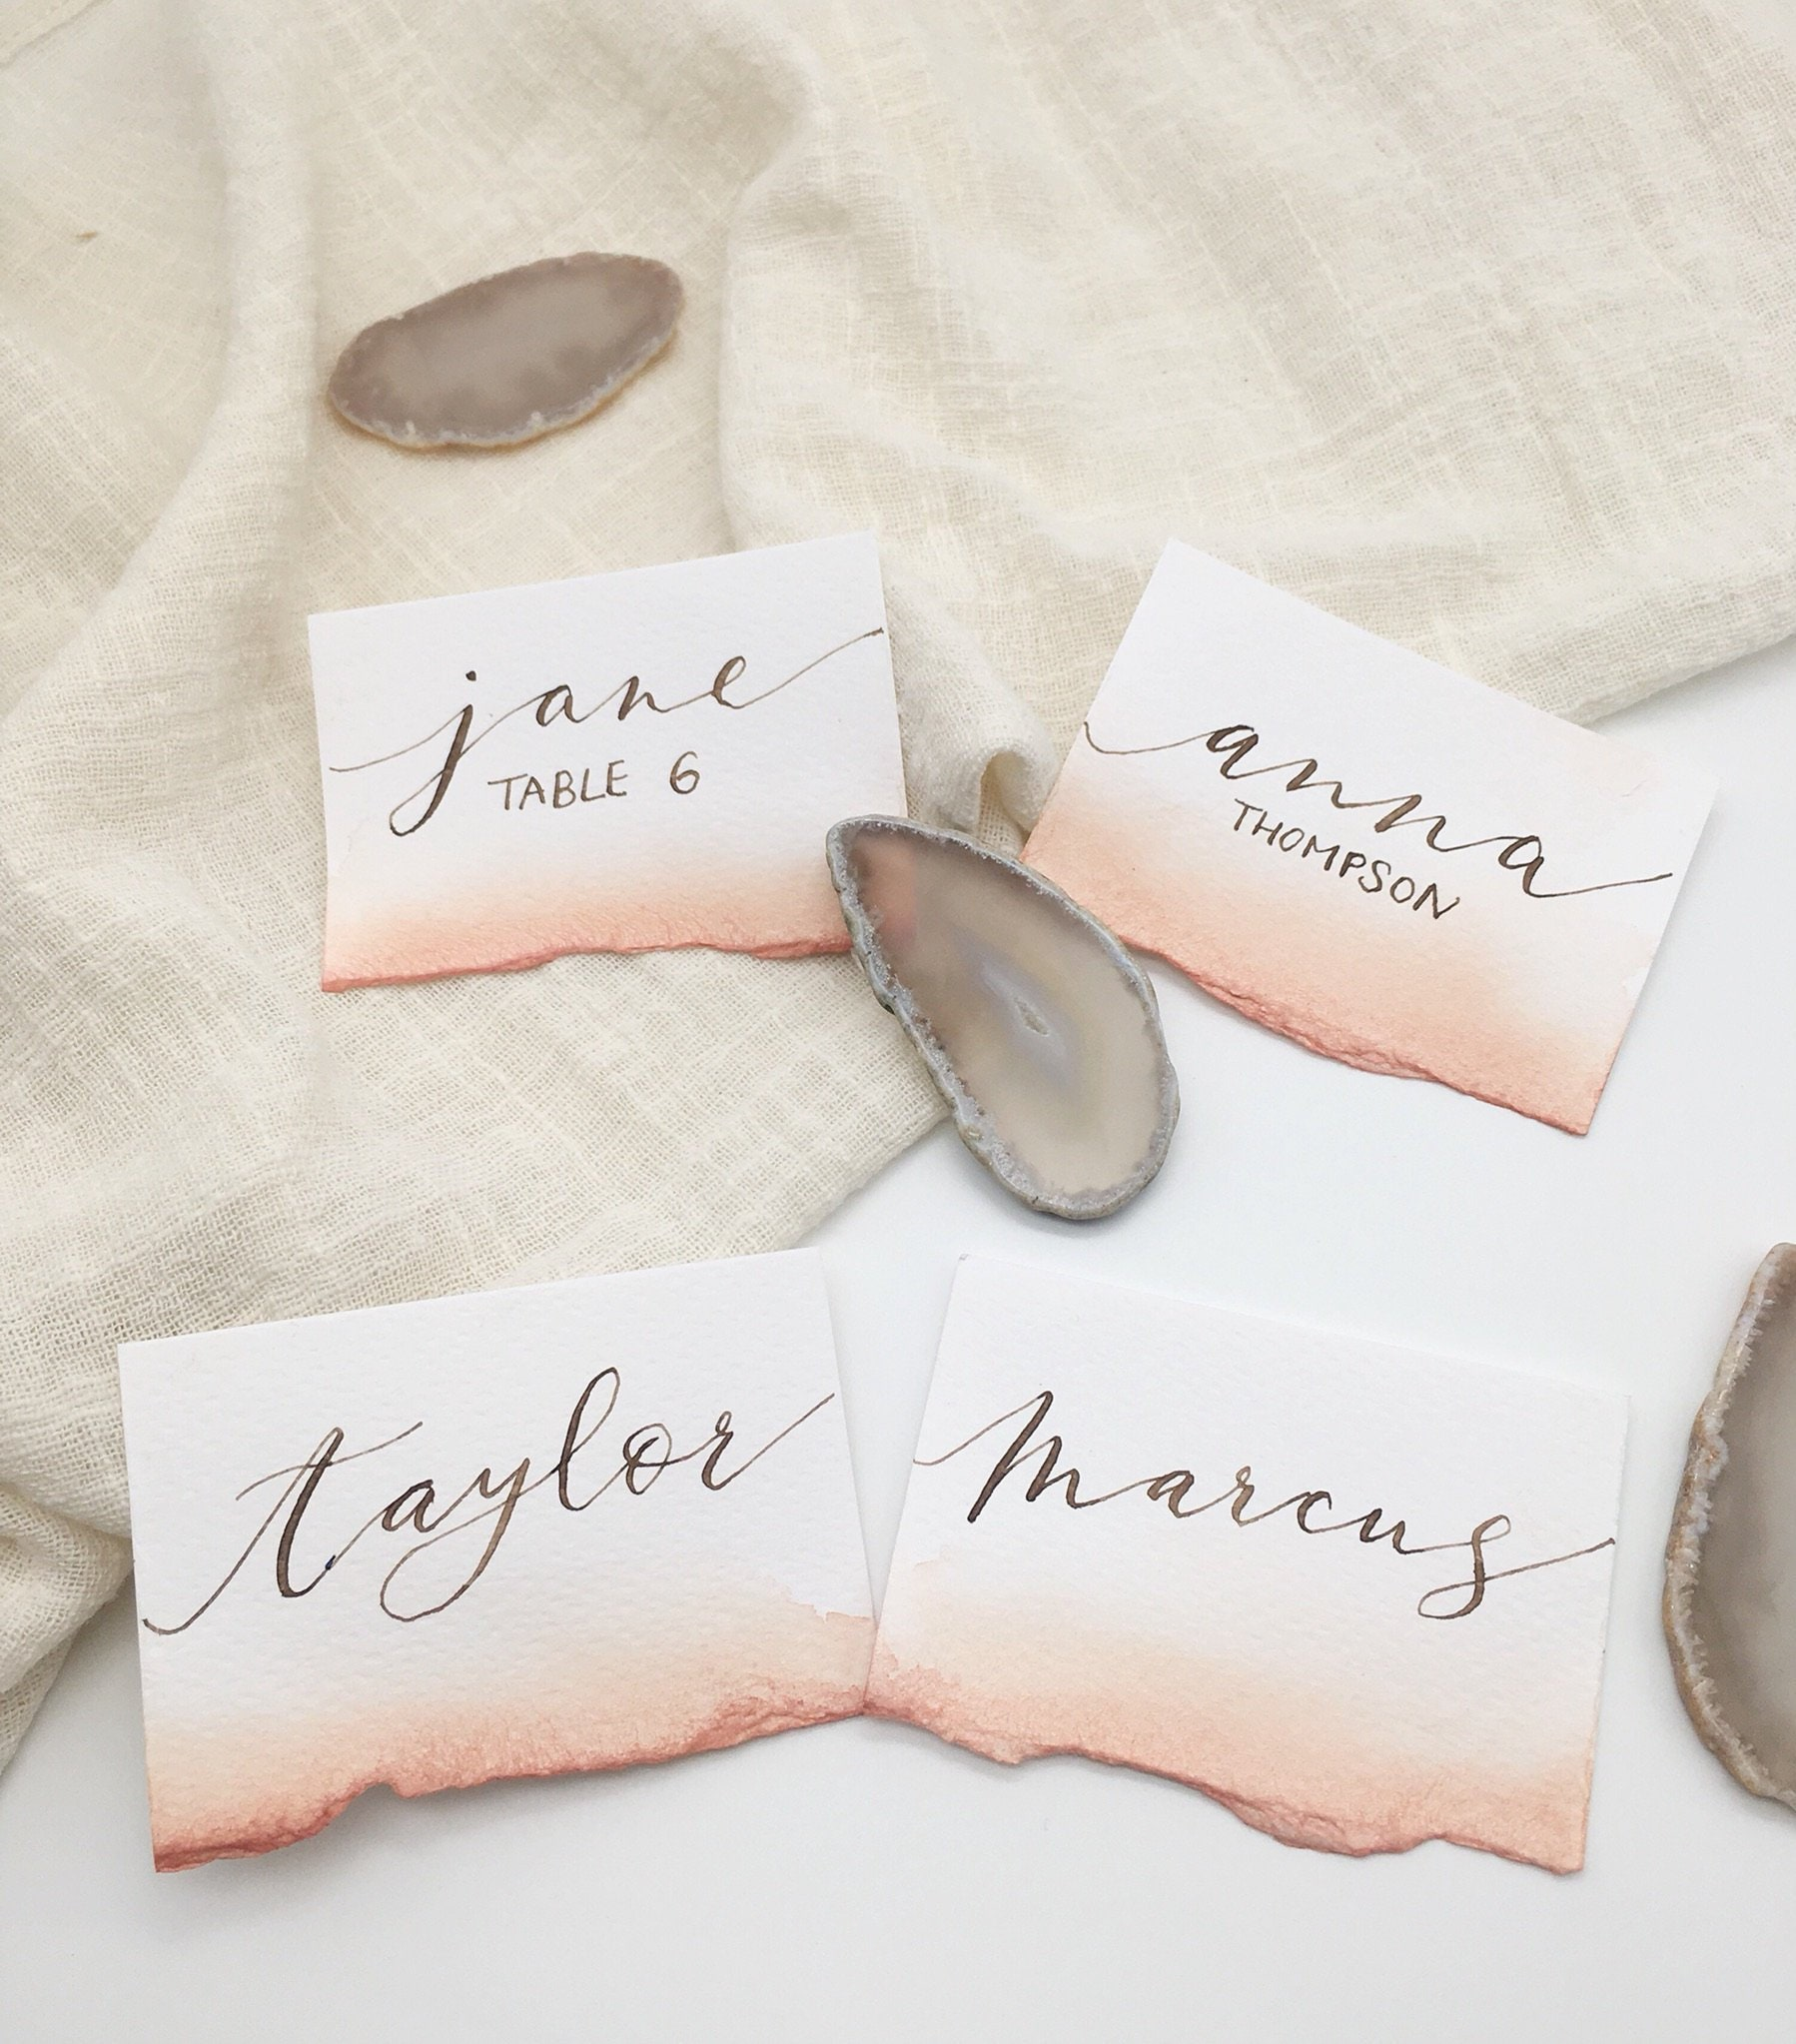 Details about  /Coral Watercolour Lights Toiletries Comfort Basket Personalised Wedding Sign